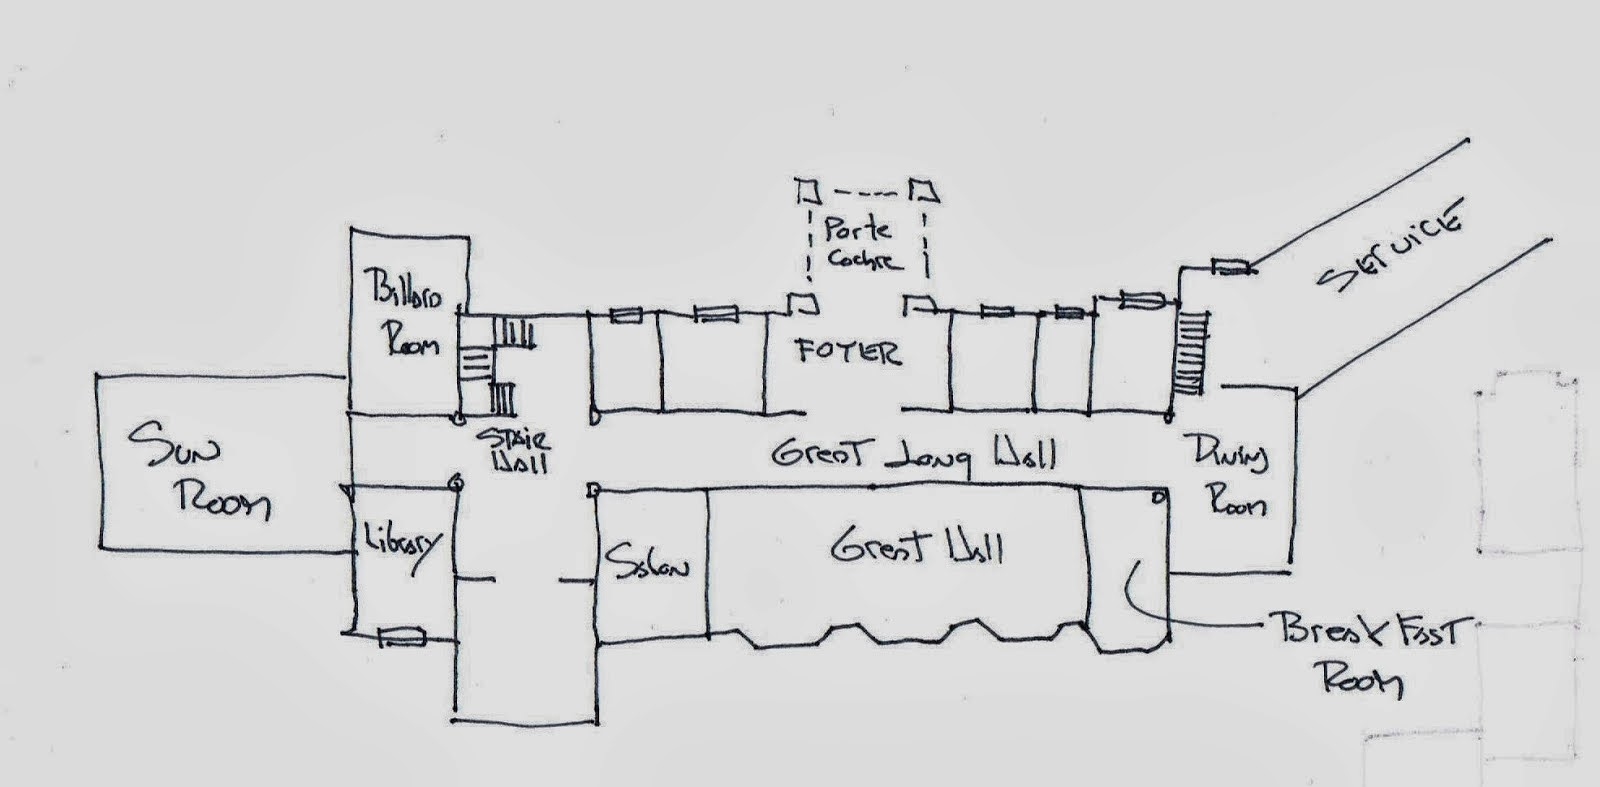 mansions of the gilded age floor plan to inisfada the the gilded age era george j gould mansion fifth avenue